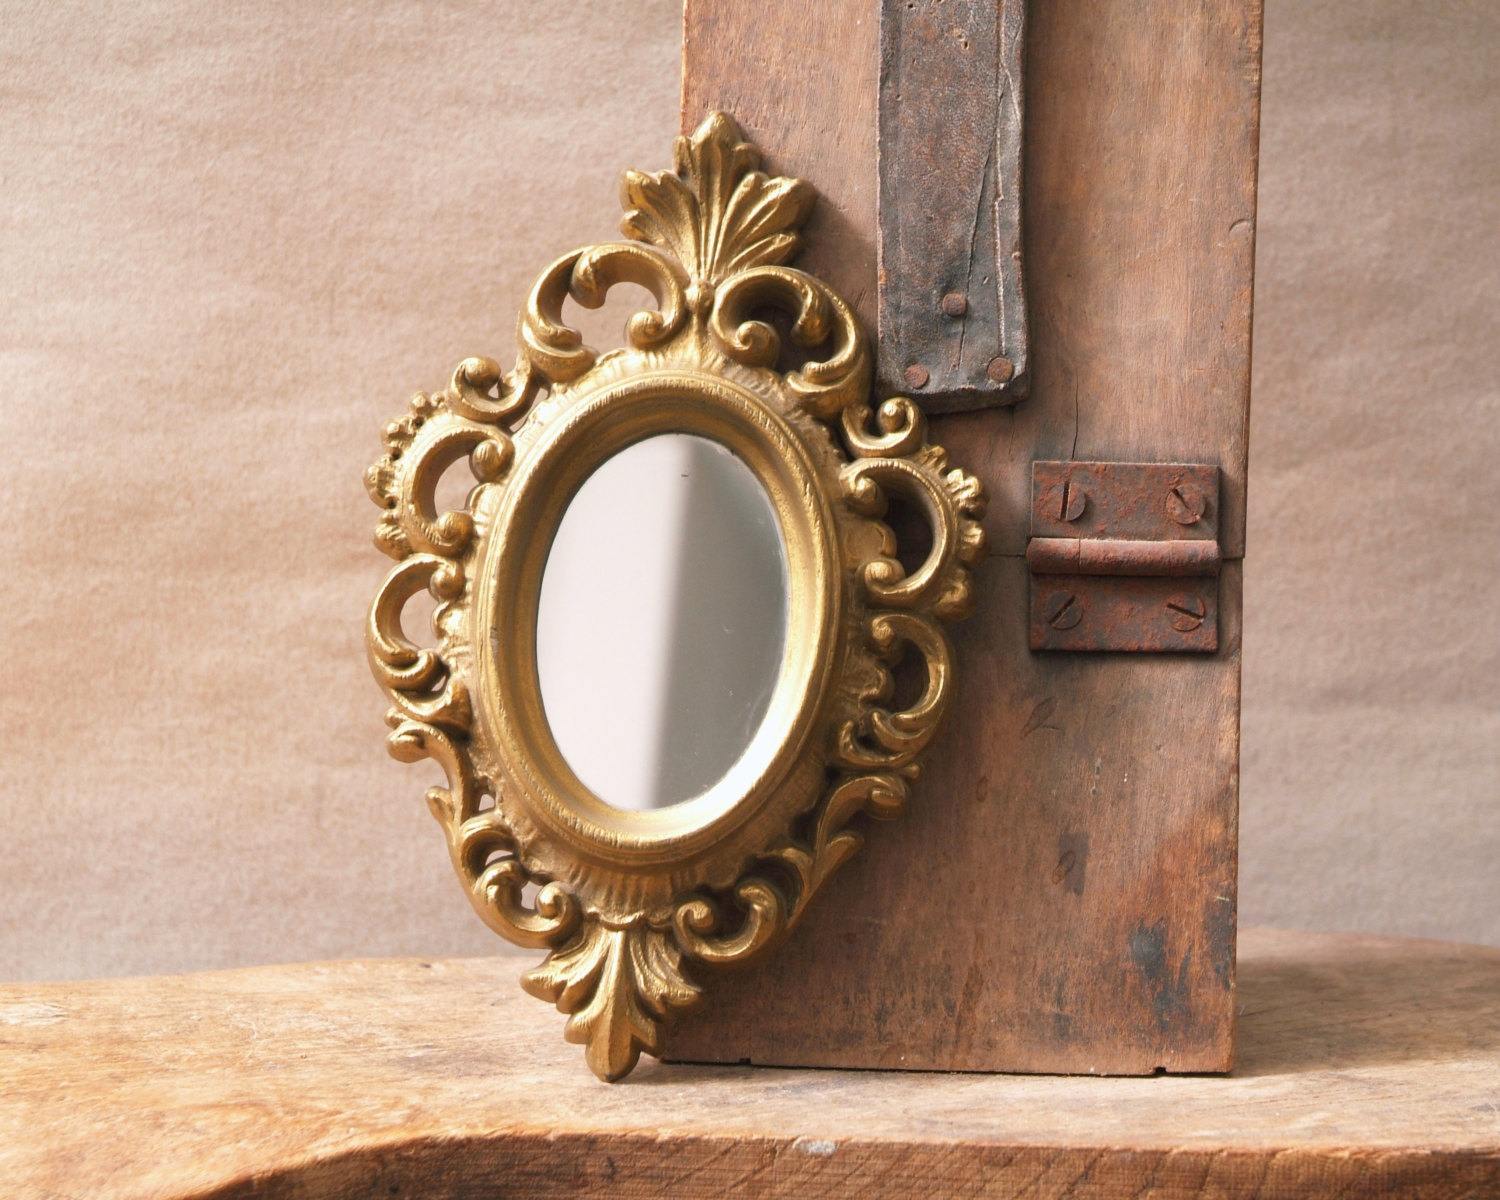 Vintage Gold Framed Mirror Small Oval Mirror Ornate Gold Regarding Small Ornate Mirror (Image 14 of 15)